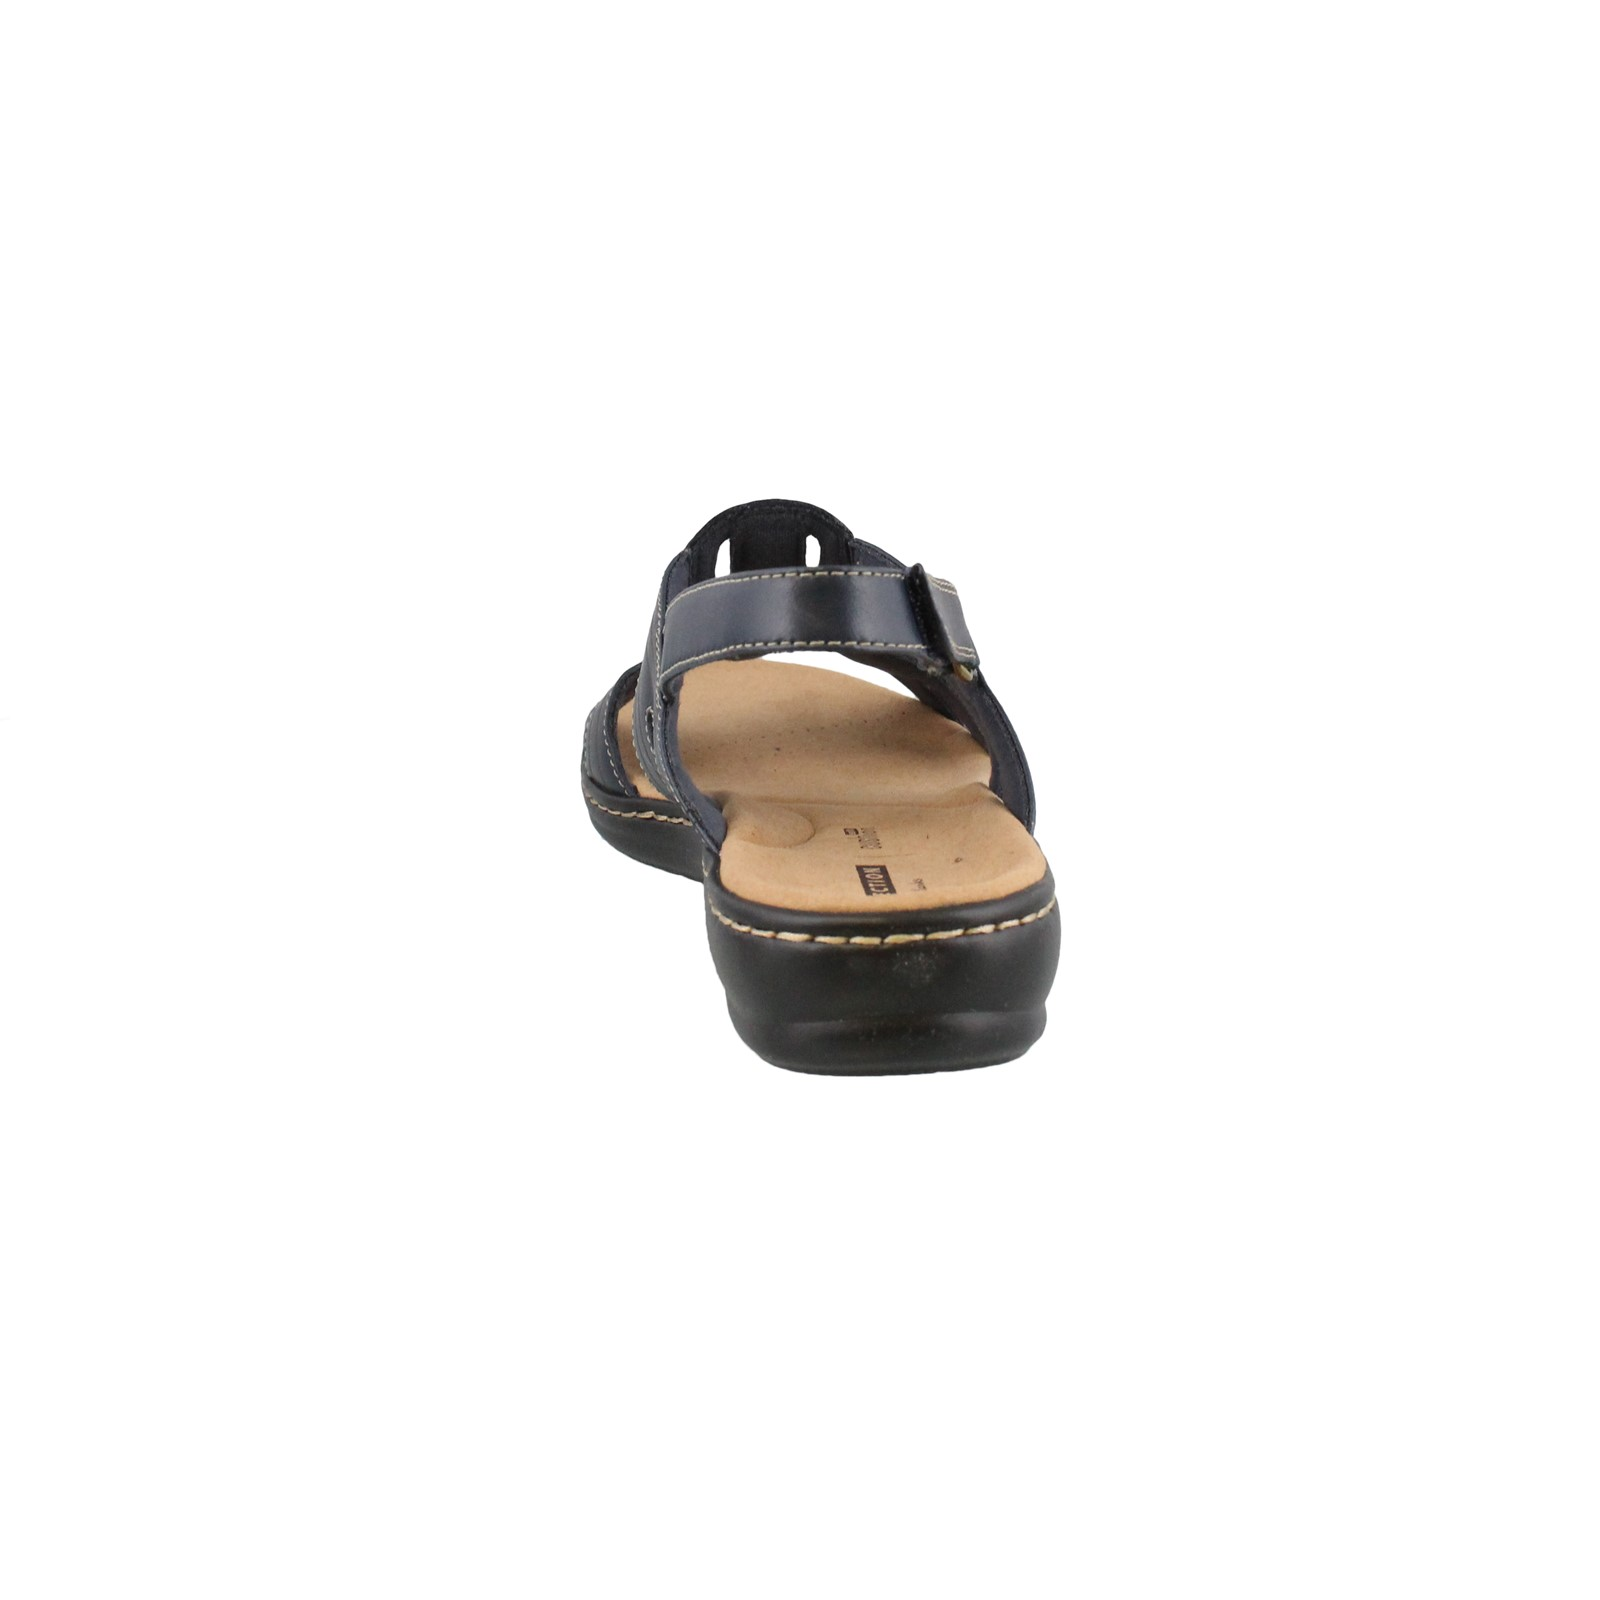 a957ad56419 Next. add to favorites. Women s Clarks